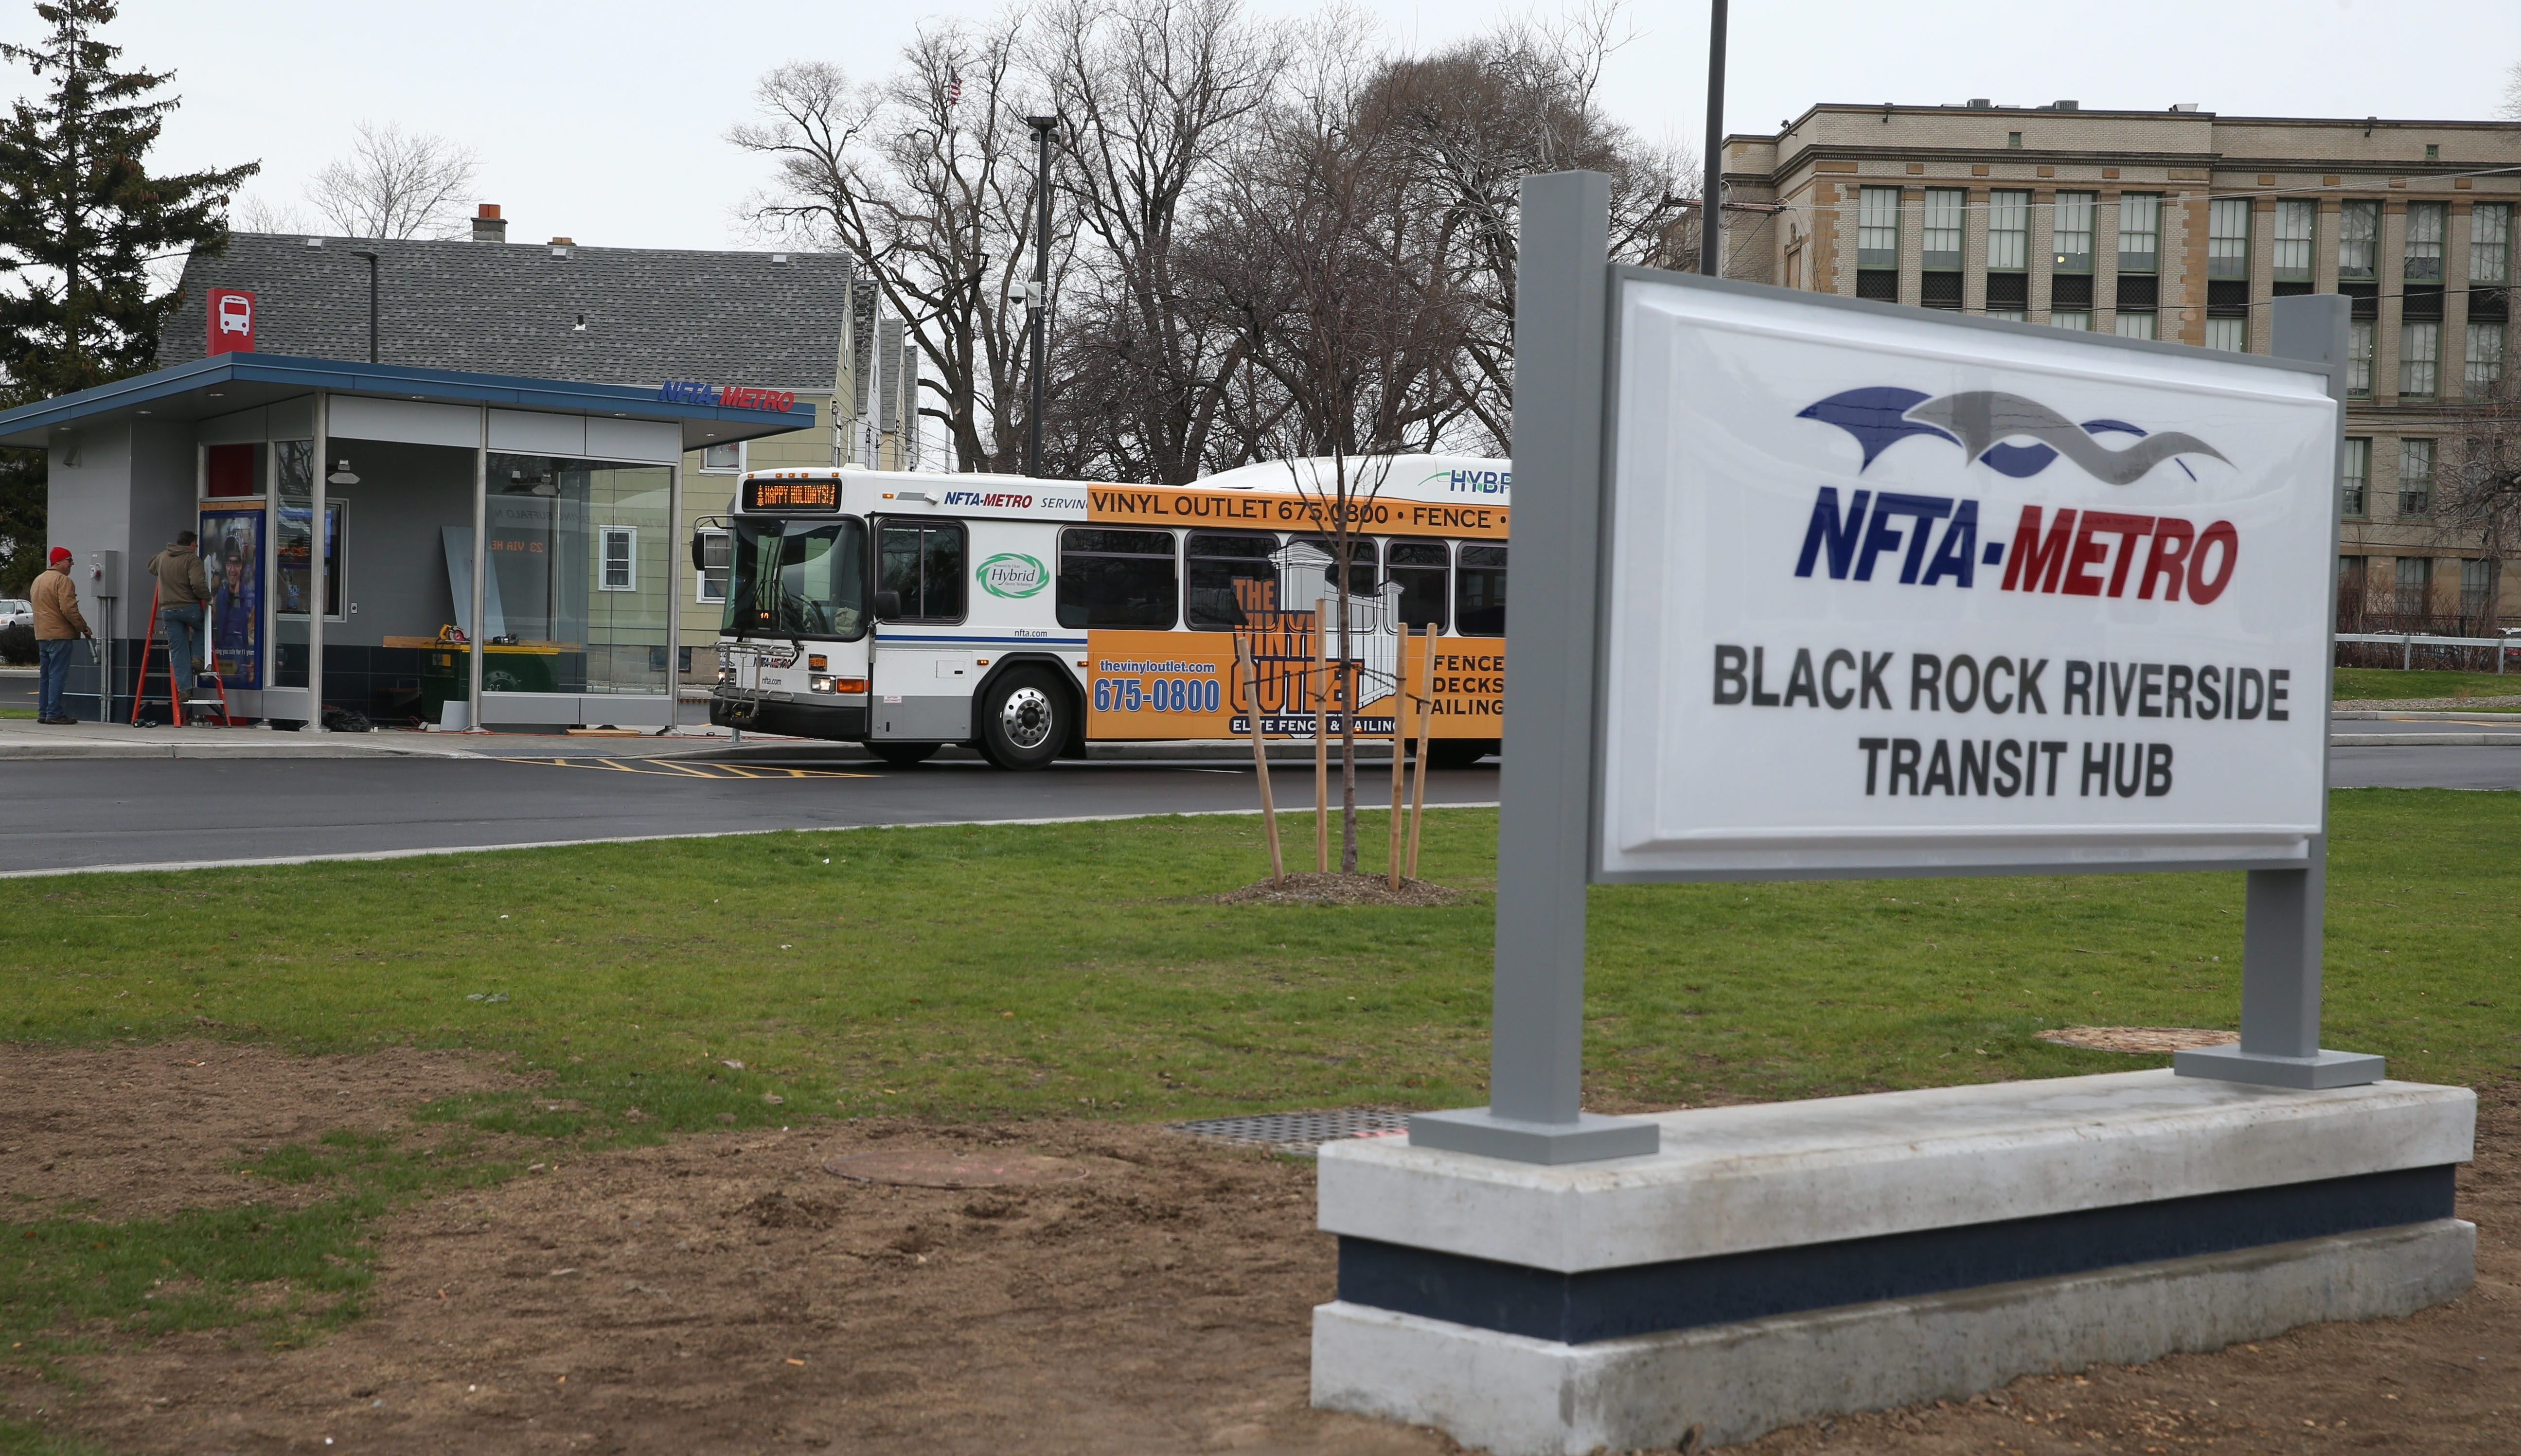 The new Metro Bus hub is one piece of the rebirth of Niagara Street. (Sharon Cantillon/Buffalo News)